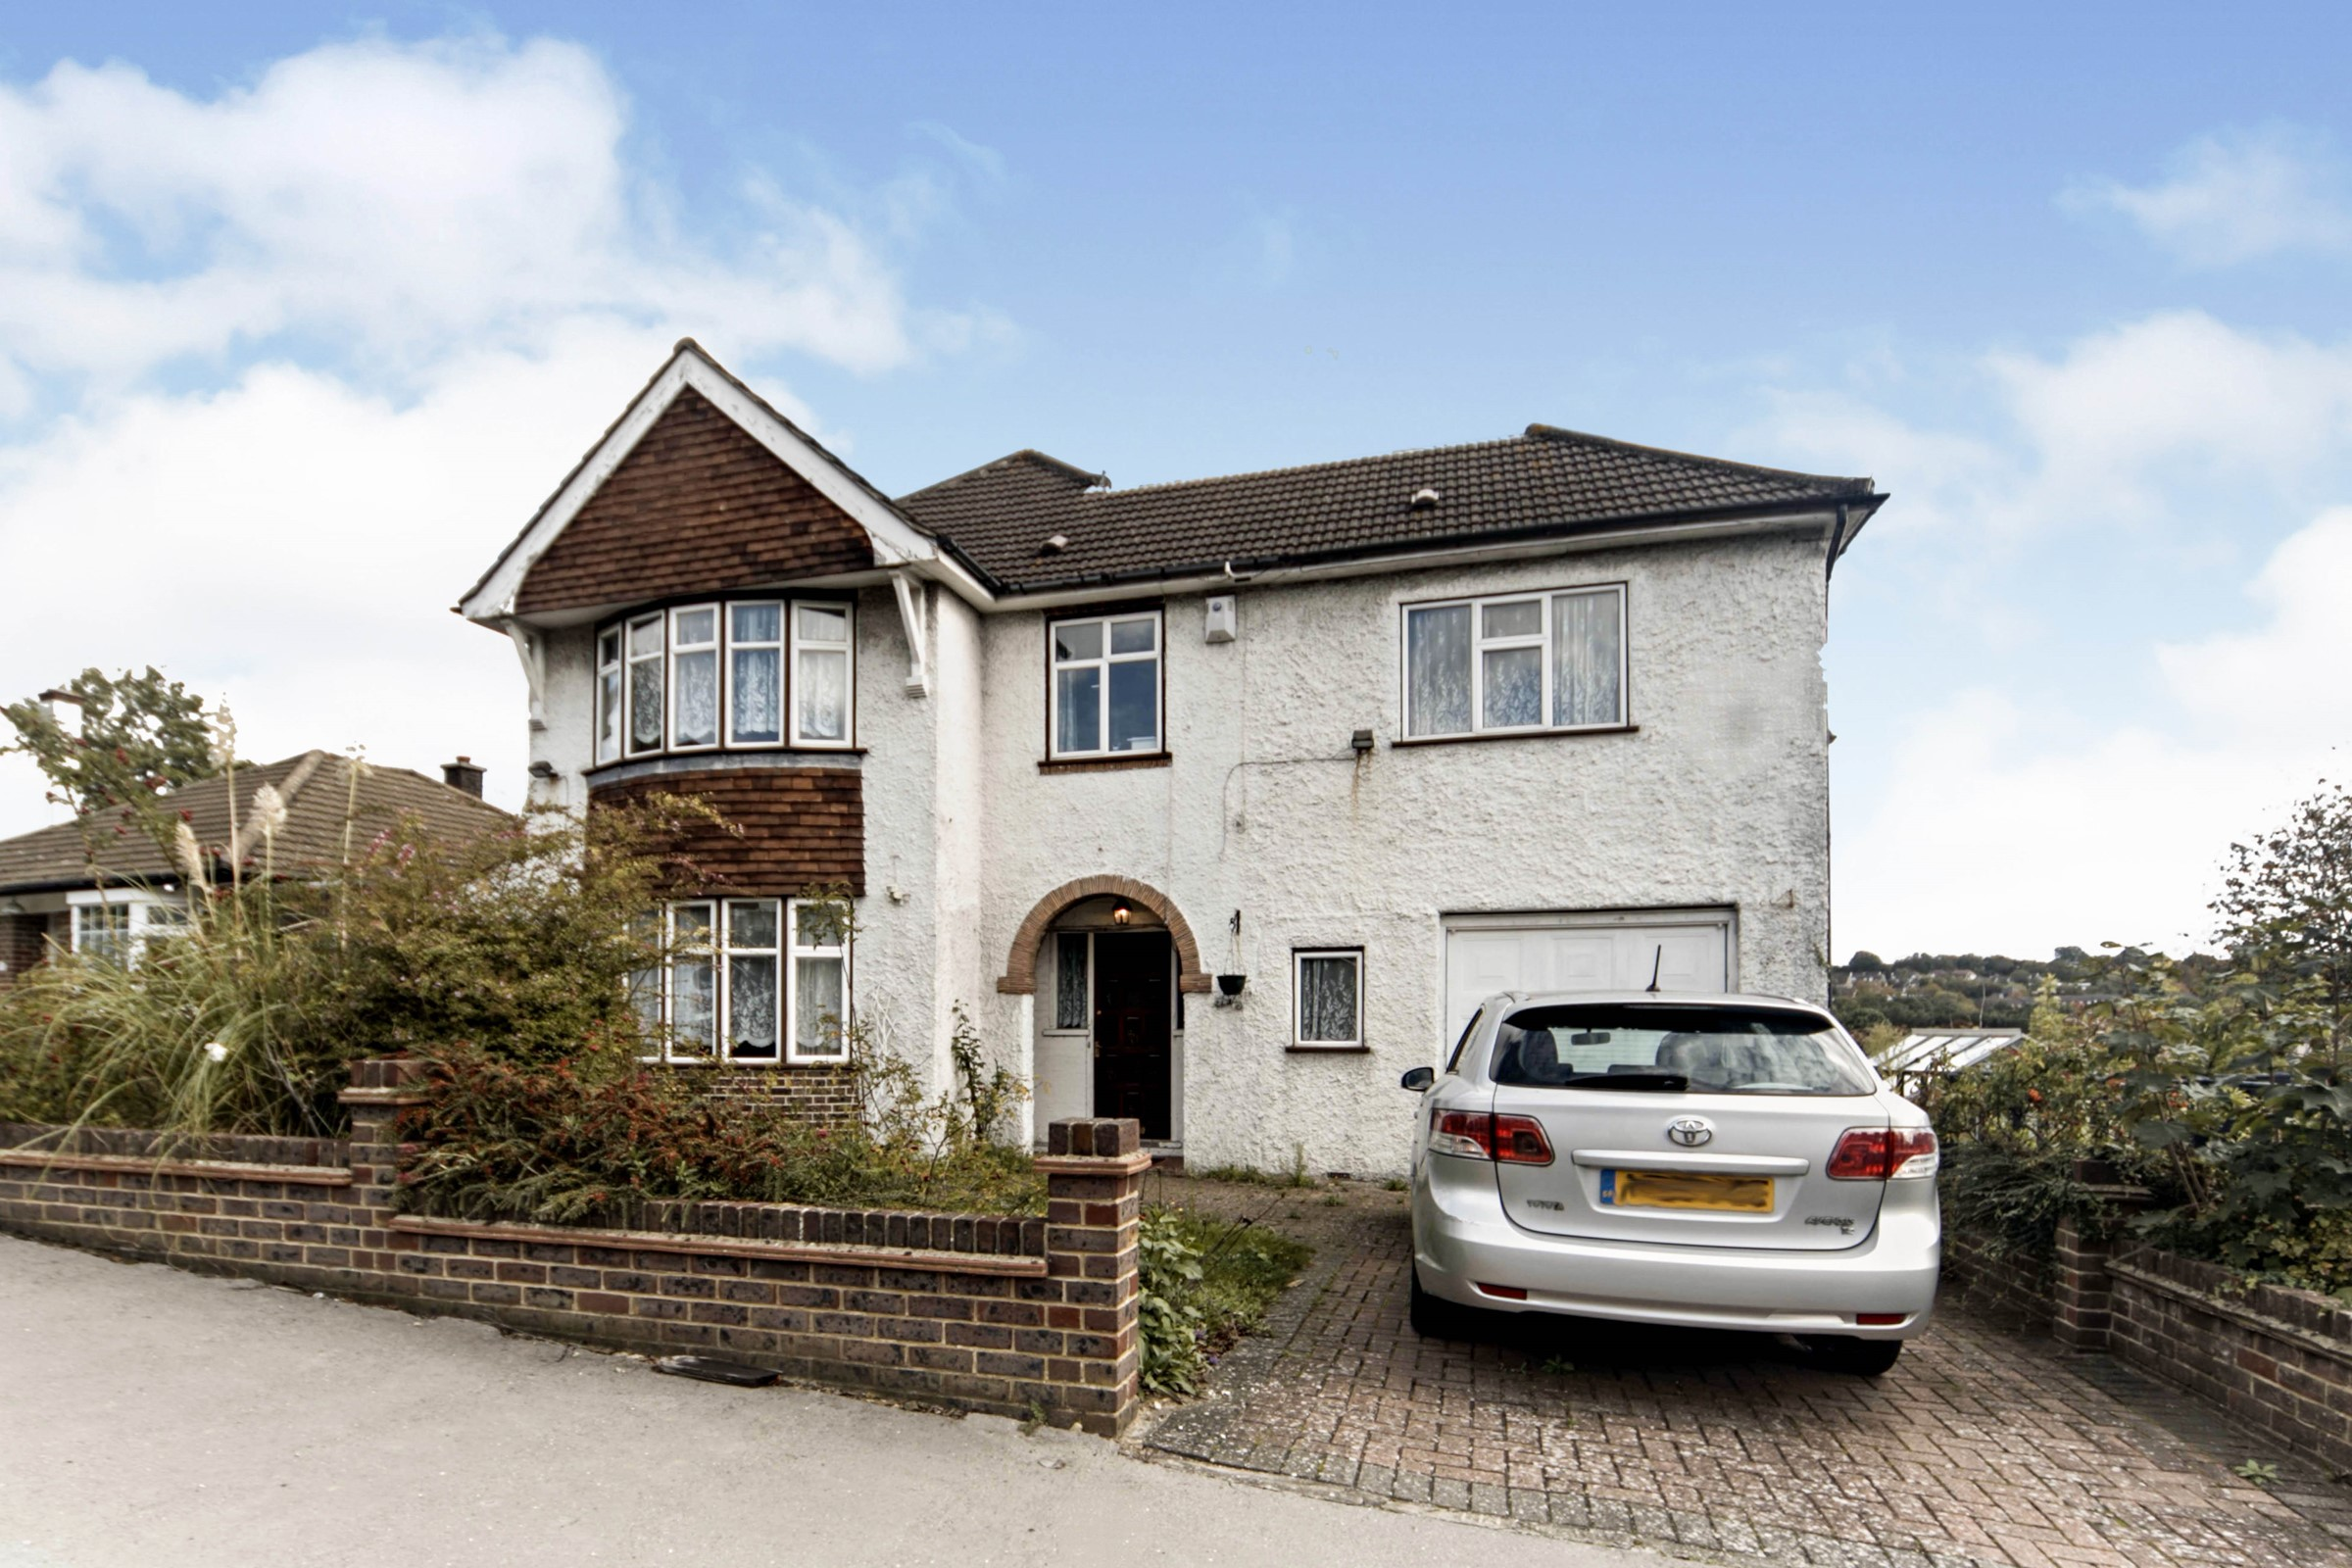 Blenheim Park Road, South Croydon, Surrey, ., CR2